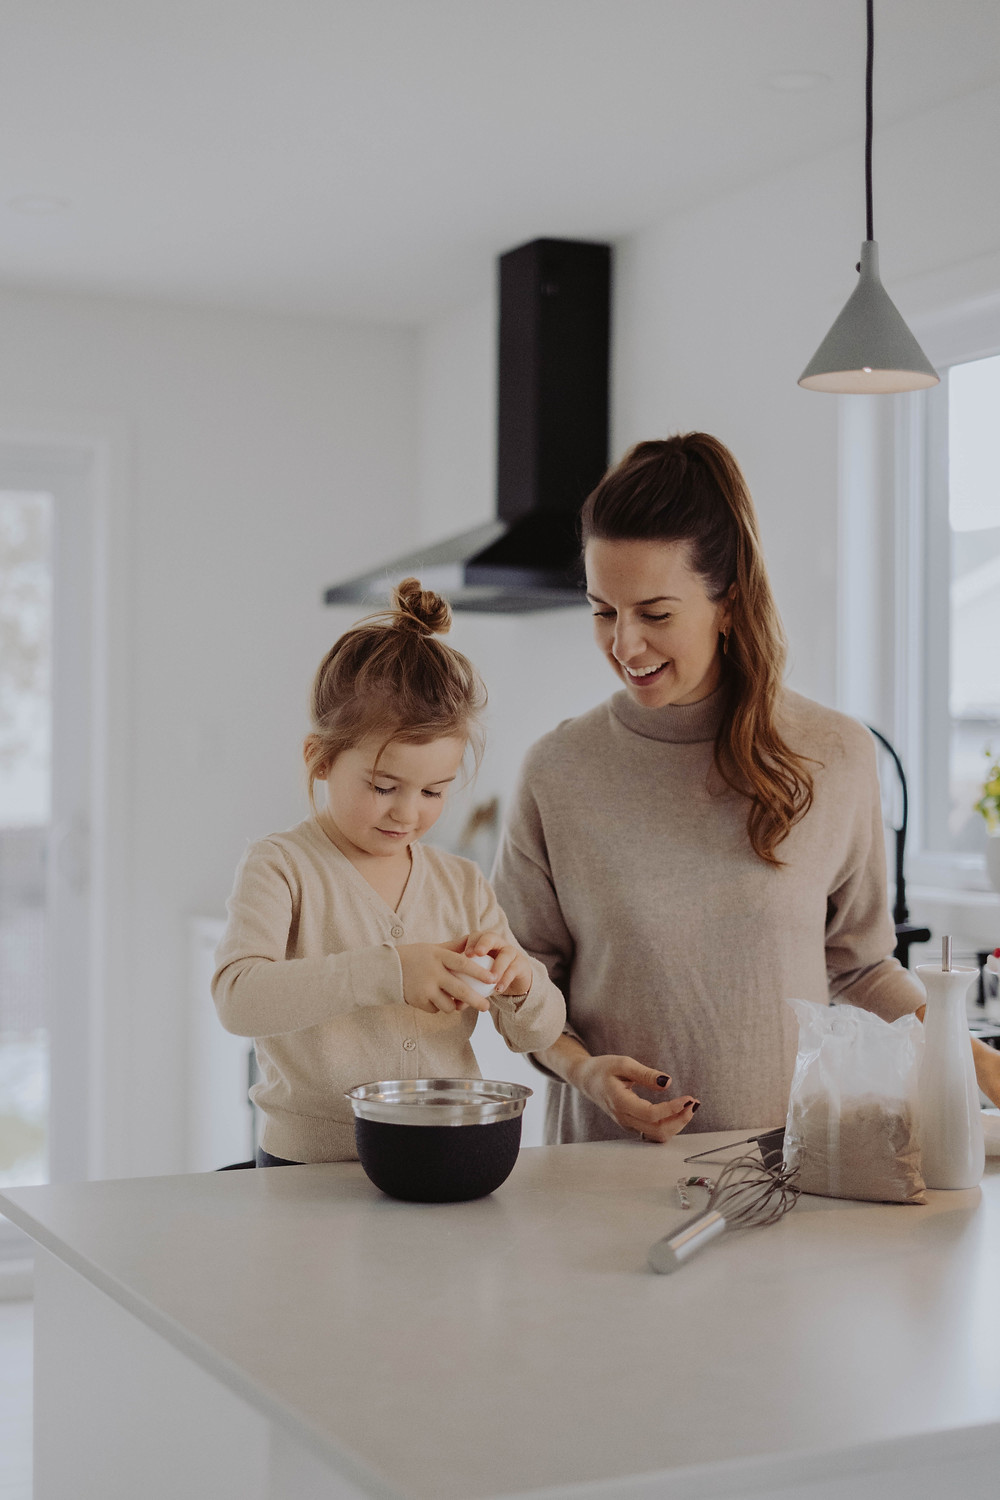 A mum cooks with her child after receiving personalised advice from The Key Clinic on the biomedical imbalances contributing to her daughter's ADHD